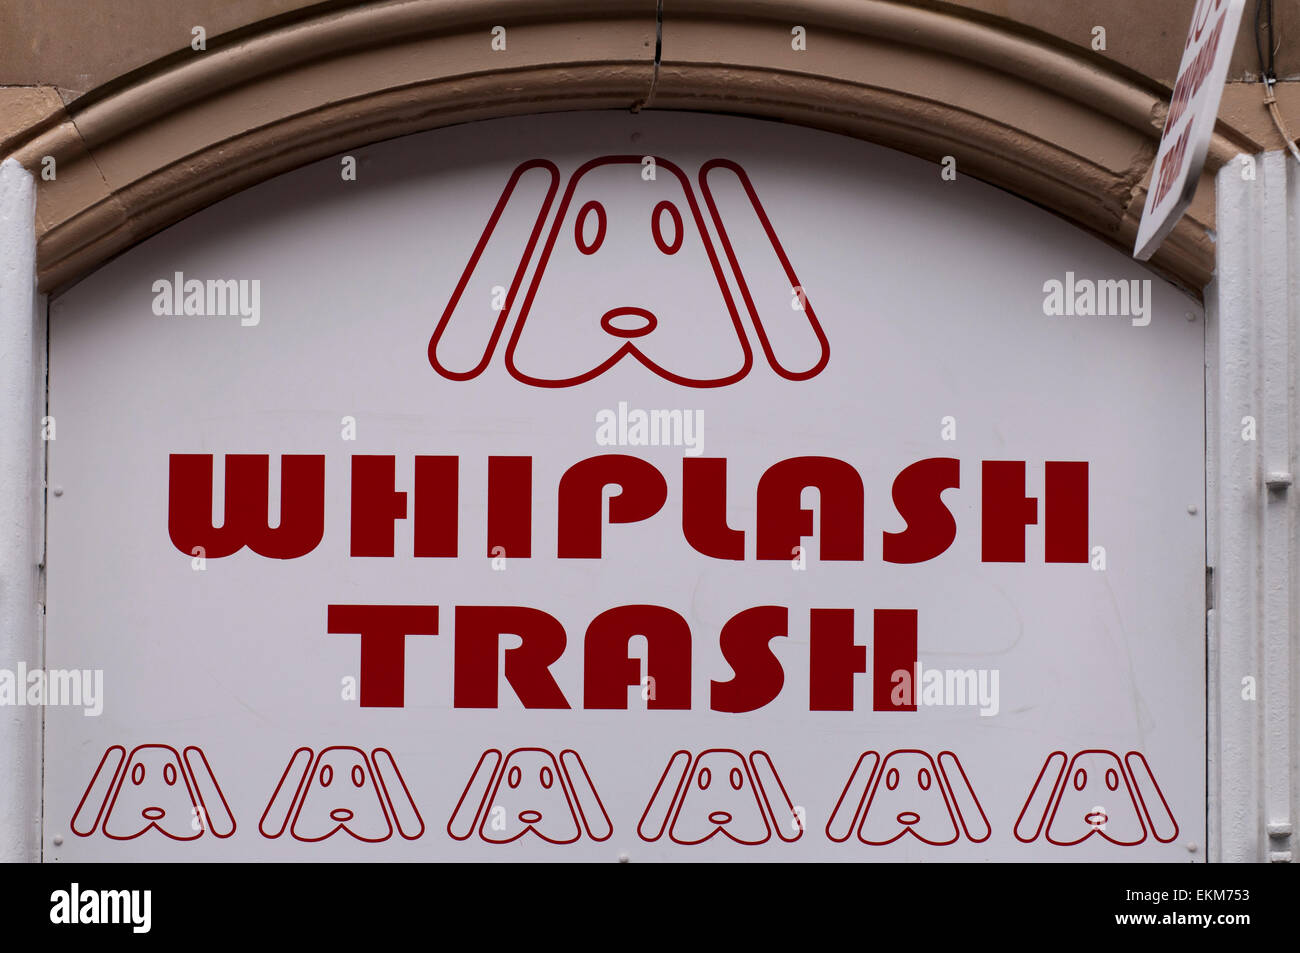 Whiplash Trash, a tattoo and piercing parlour. - Stock Image